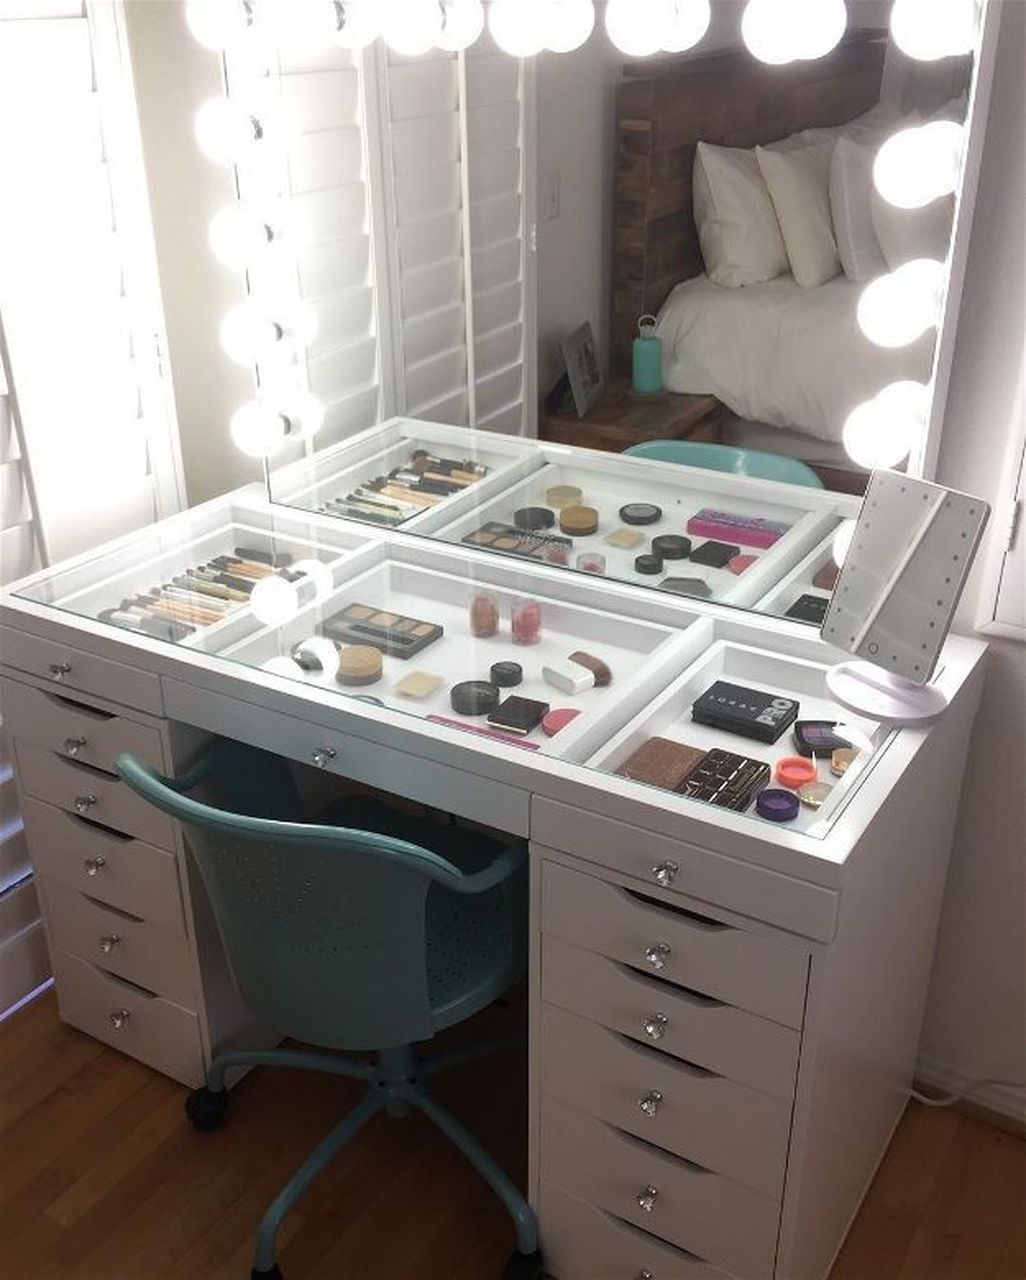 41 Adorable Make Up Vanity Ideas Suitable for Small Space